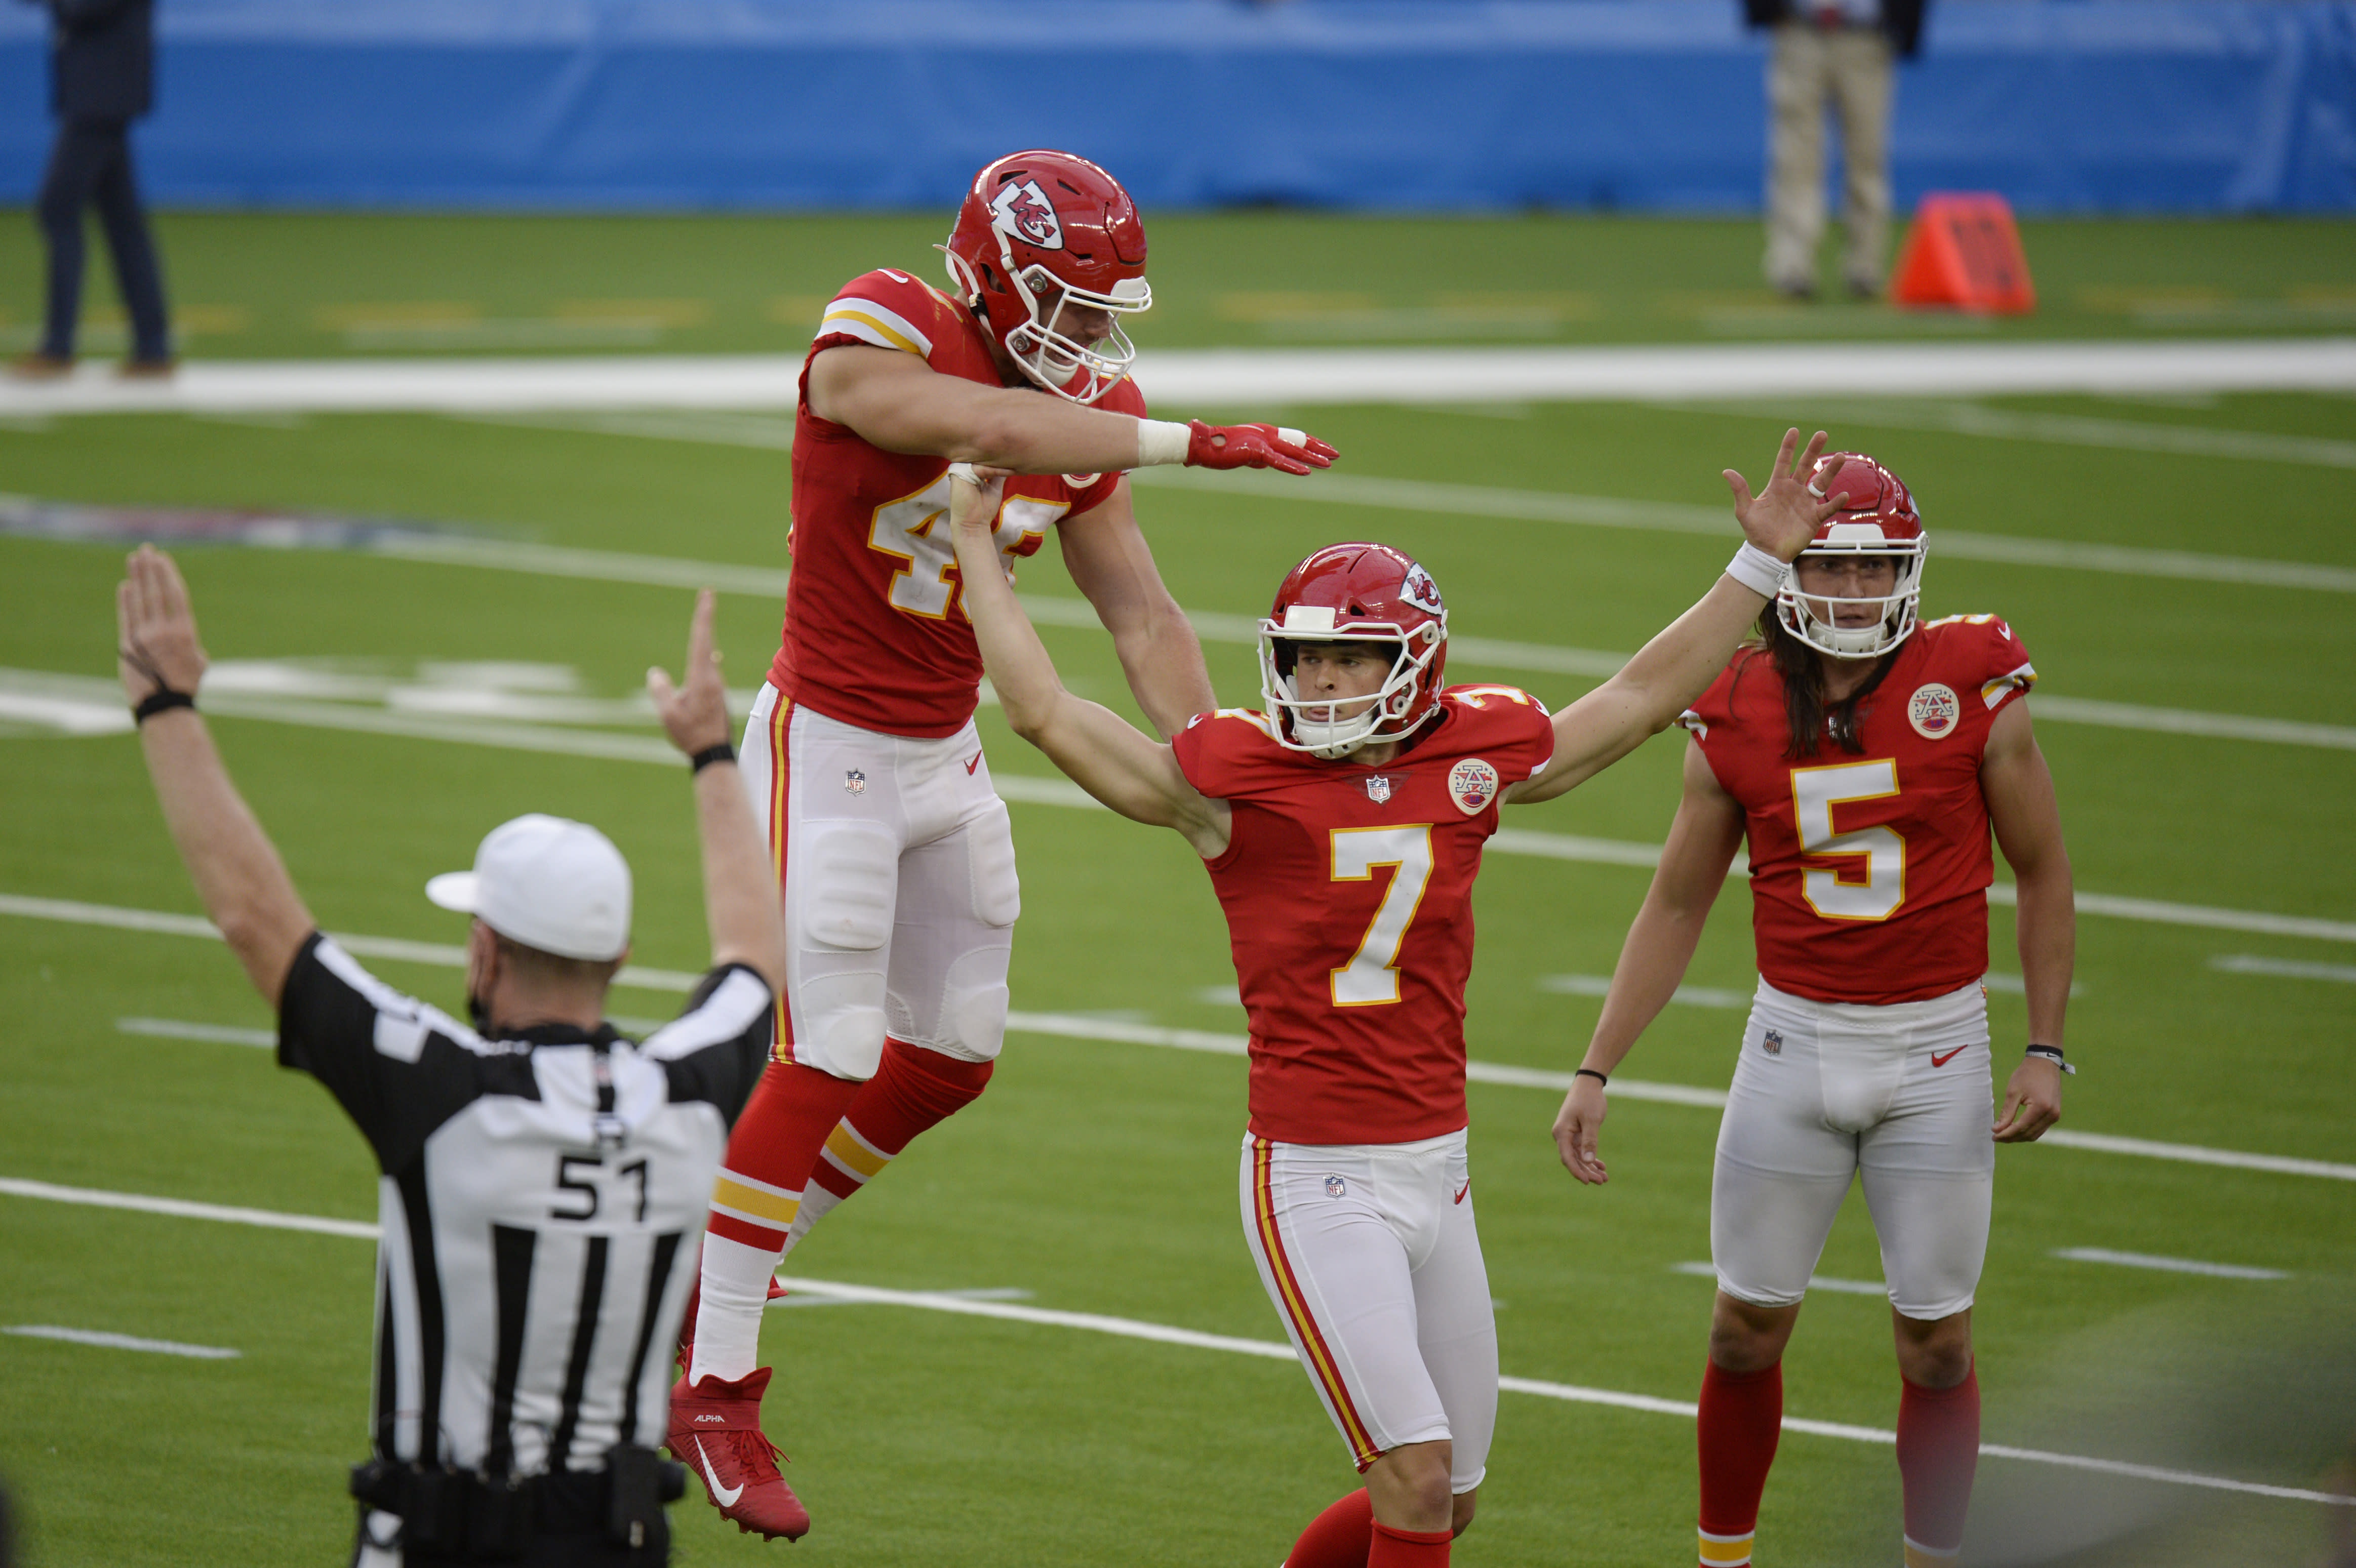 Kansas City Chiefs kicker Harrison Butker (7) celebrates after making the game-winning field goal during overtime of an NFL football game against the Los Angeles Chargers Sunday, Sept. 20, 2020, in Inglewood, Calif. Kansas City won 23-20. (AP Photo/Kyusung Gong)